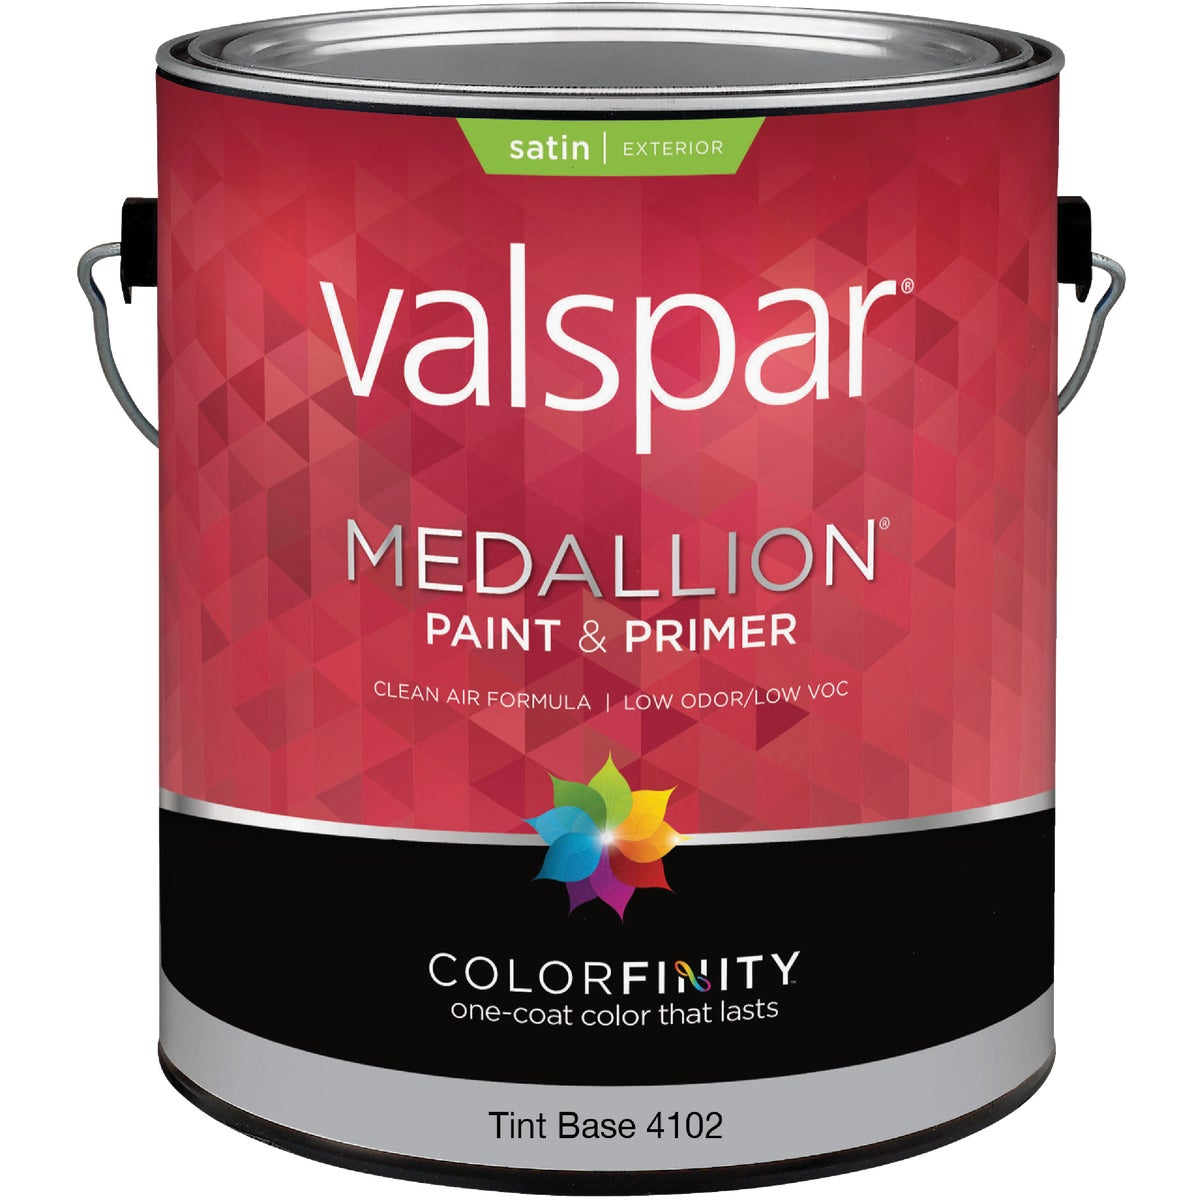 EXT SAT TINT BS PAINT - 027.0004102.007 by Valspar Corp